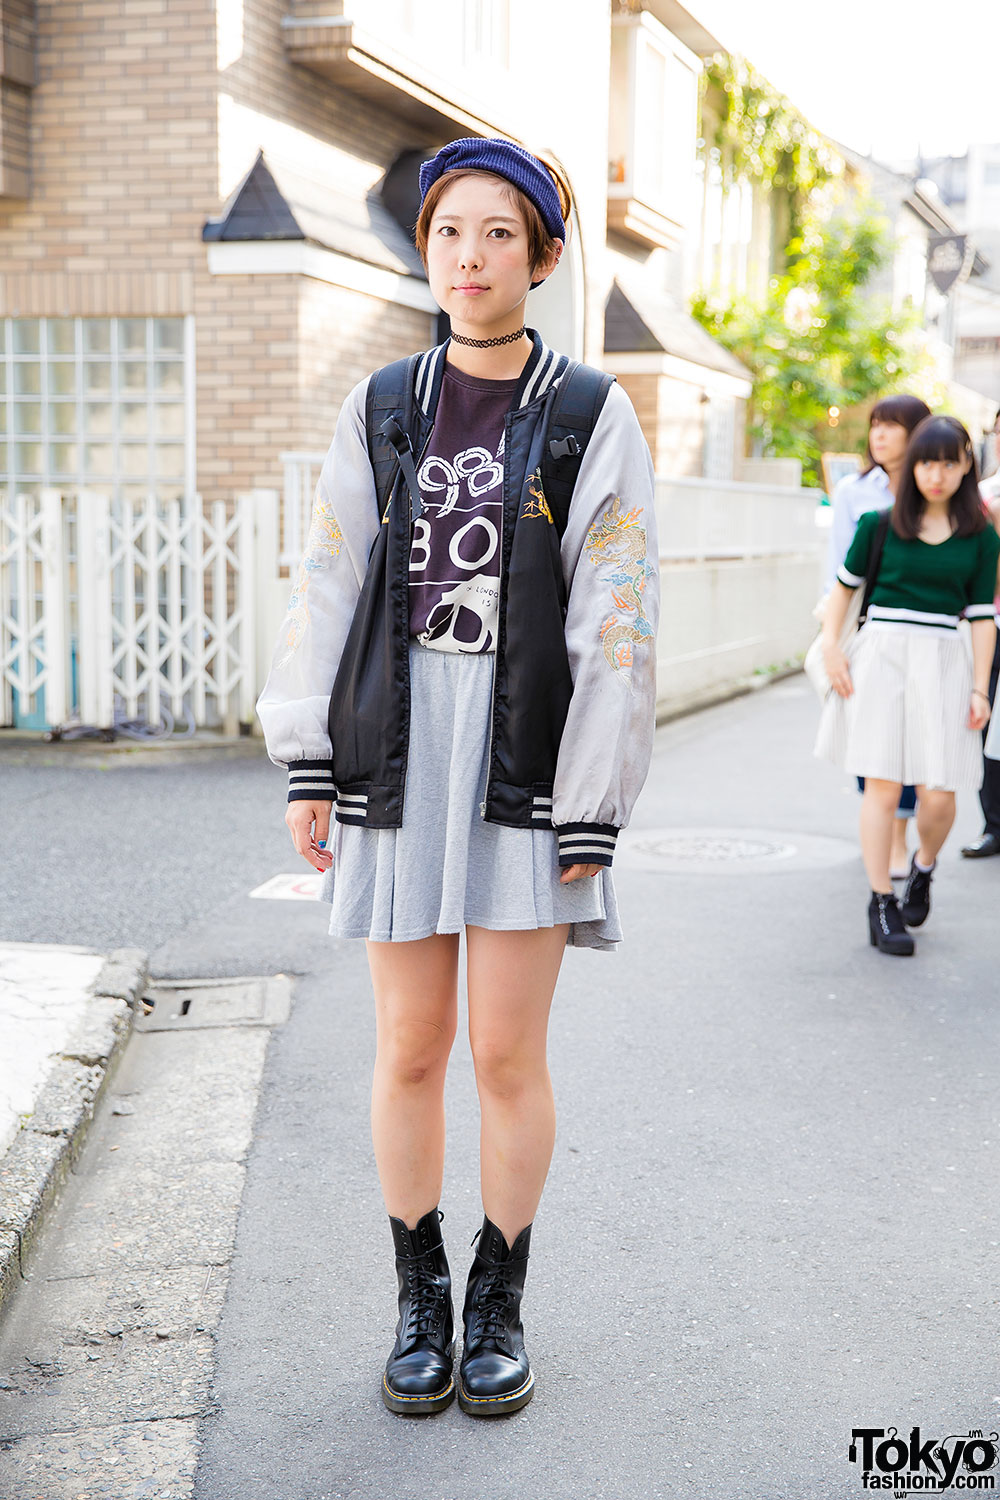 Harajuku girl in oversized sukajan jacket boy london dr martens boots Girl fashion style london